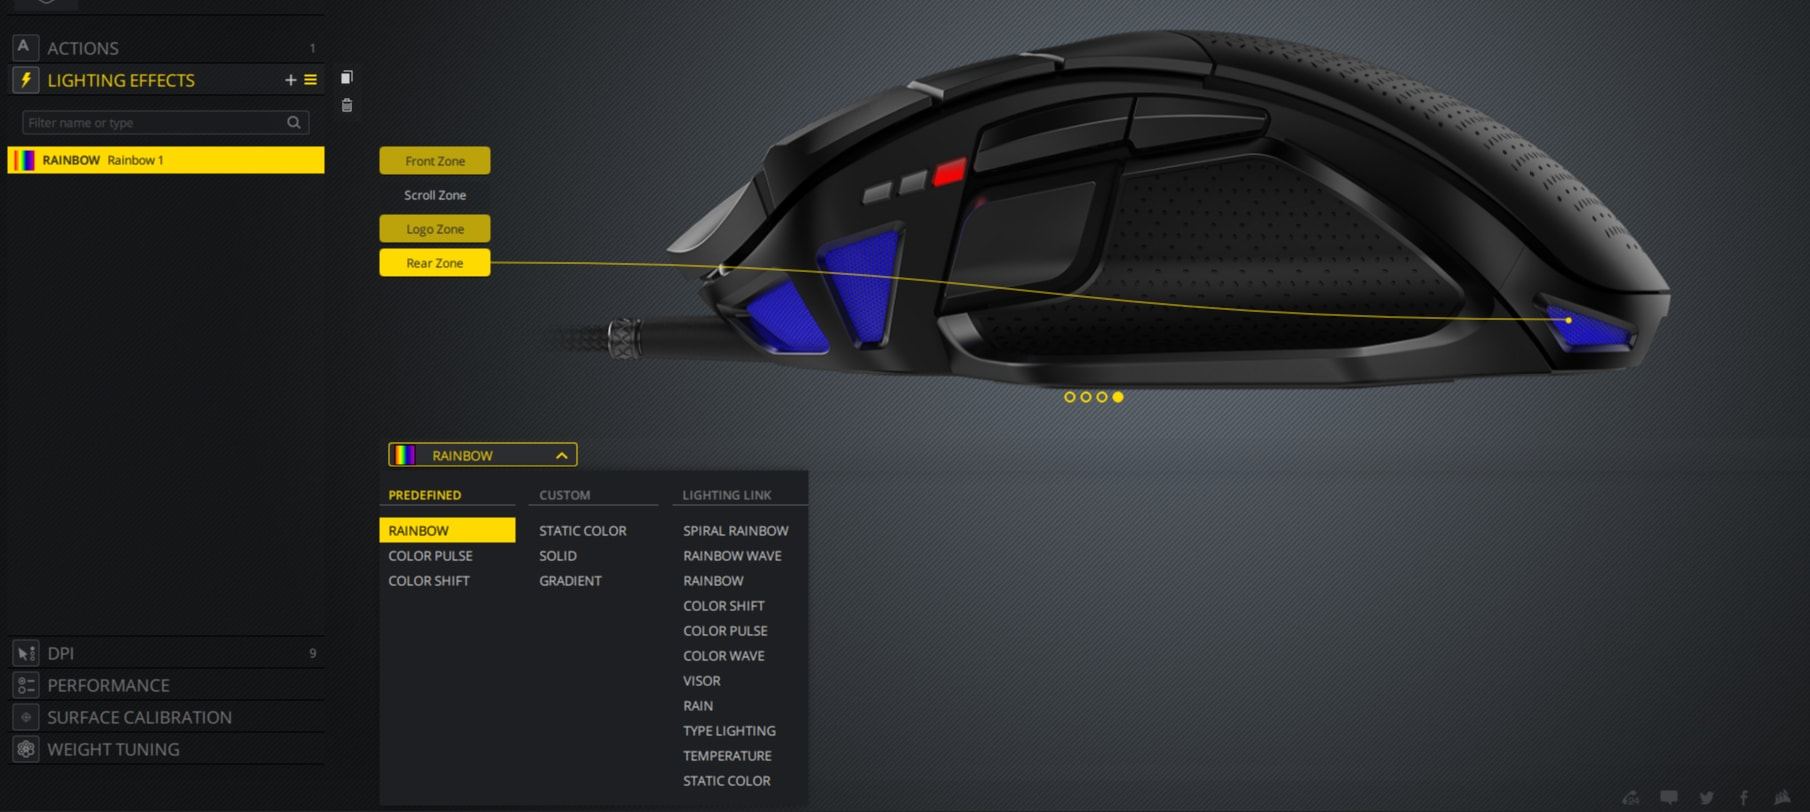 Corsair NightSword RGB Gaming Mouse Review 8